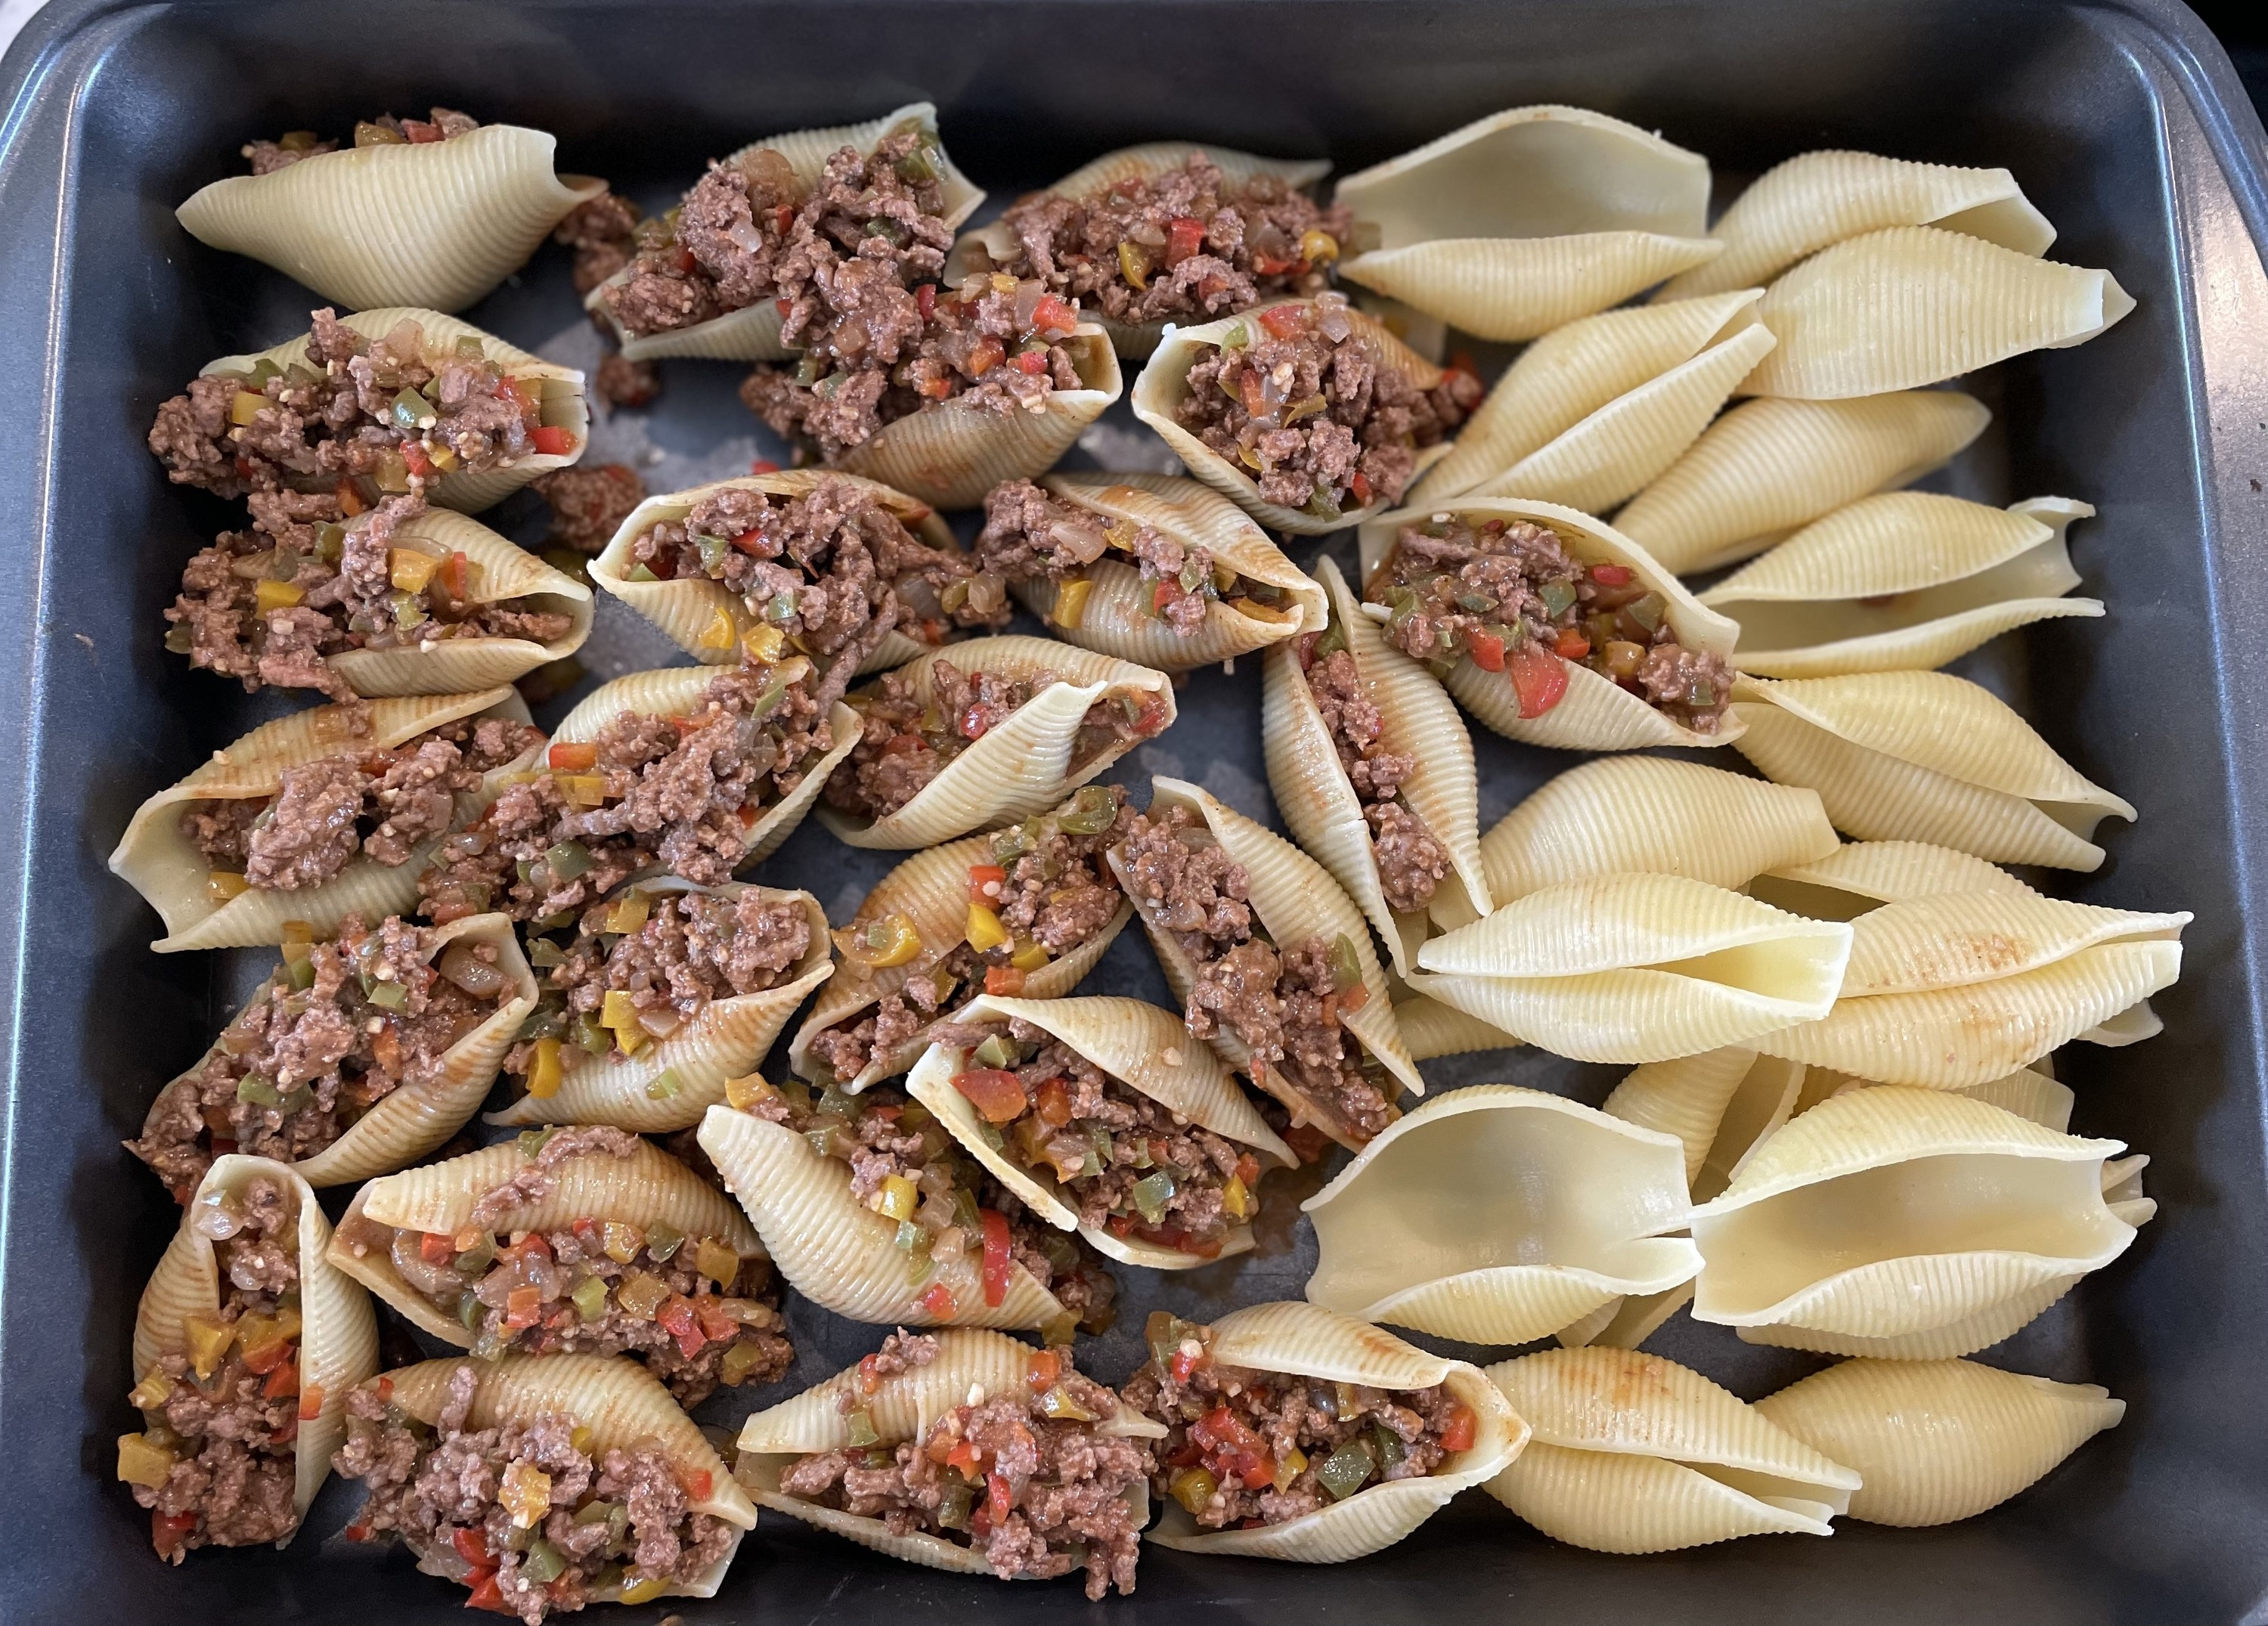 Stuffed shells prior to going into the oven